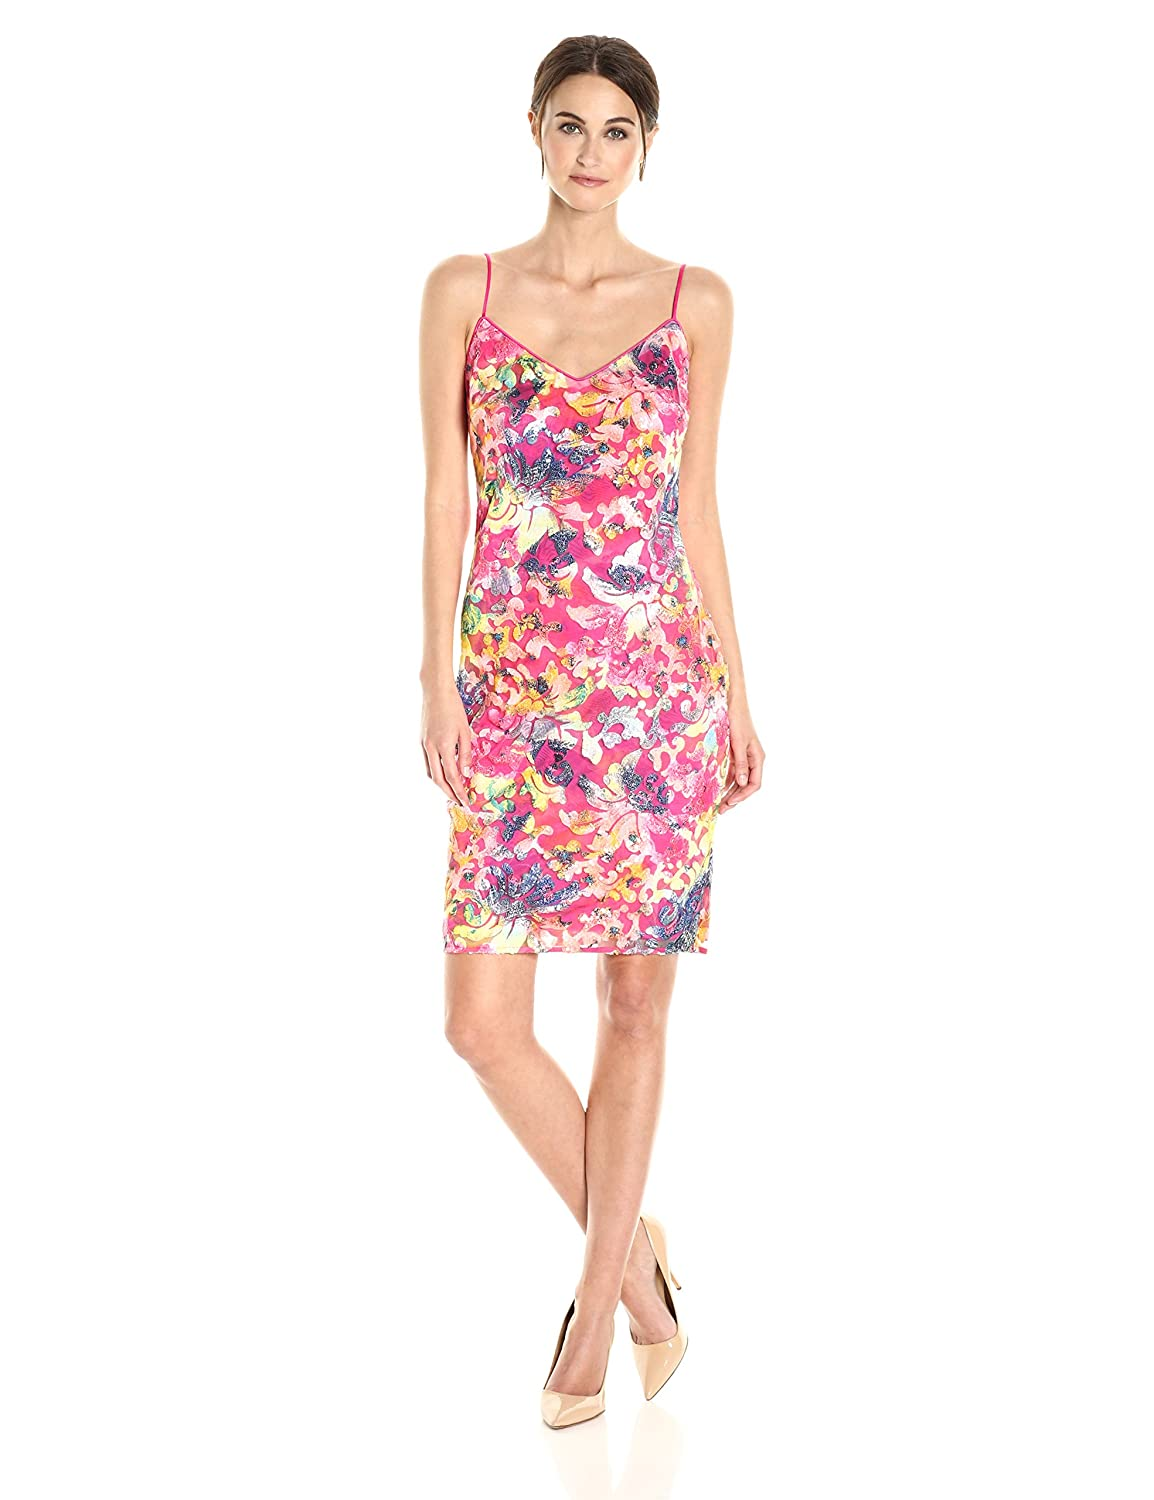 Bright pink Laundry by Shelli Segal Womens Printed Burno Out Sequin Cocktail Dress